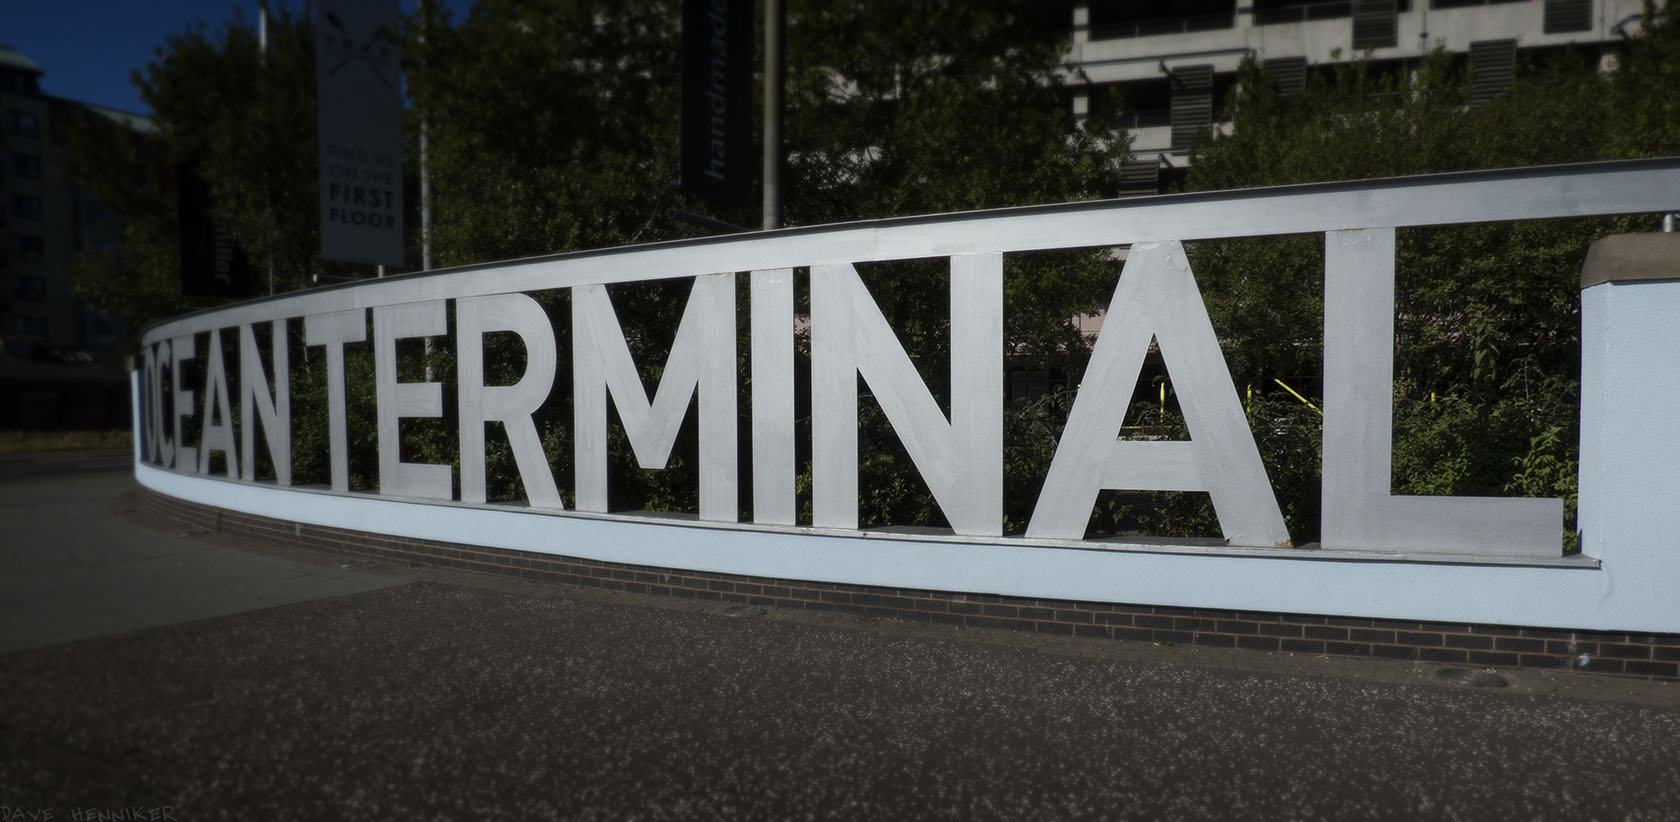 A metal fence made from the letters of Ocean Terminal.